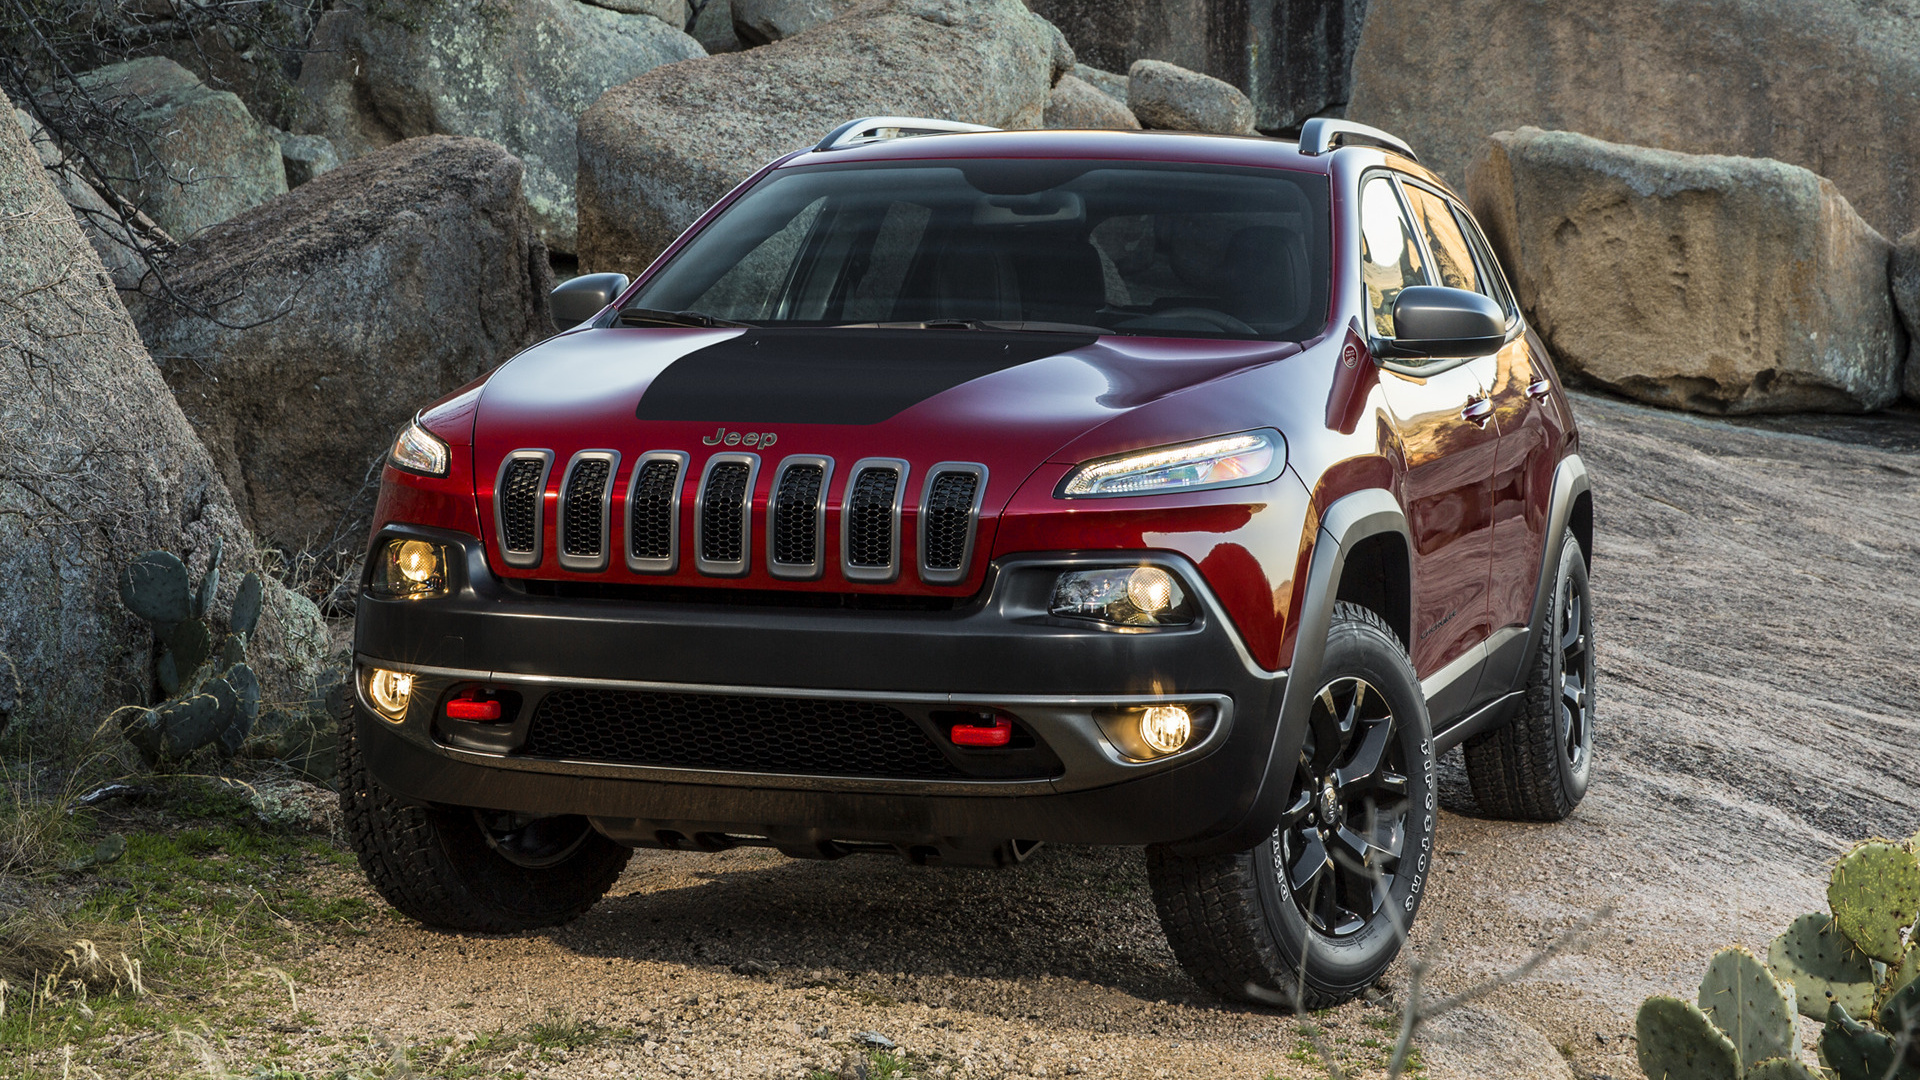 Jeep Cherokee Trailhawk (2014) Wallpapers and HD Images ...